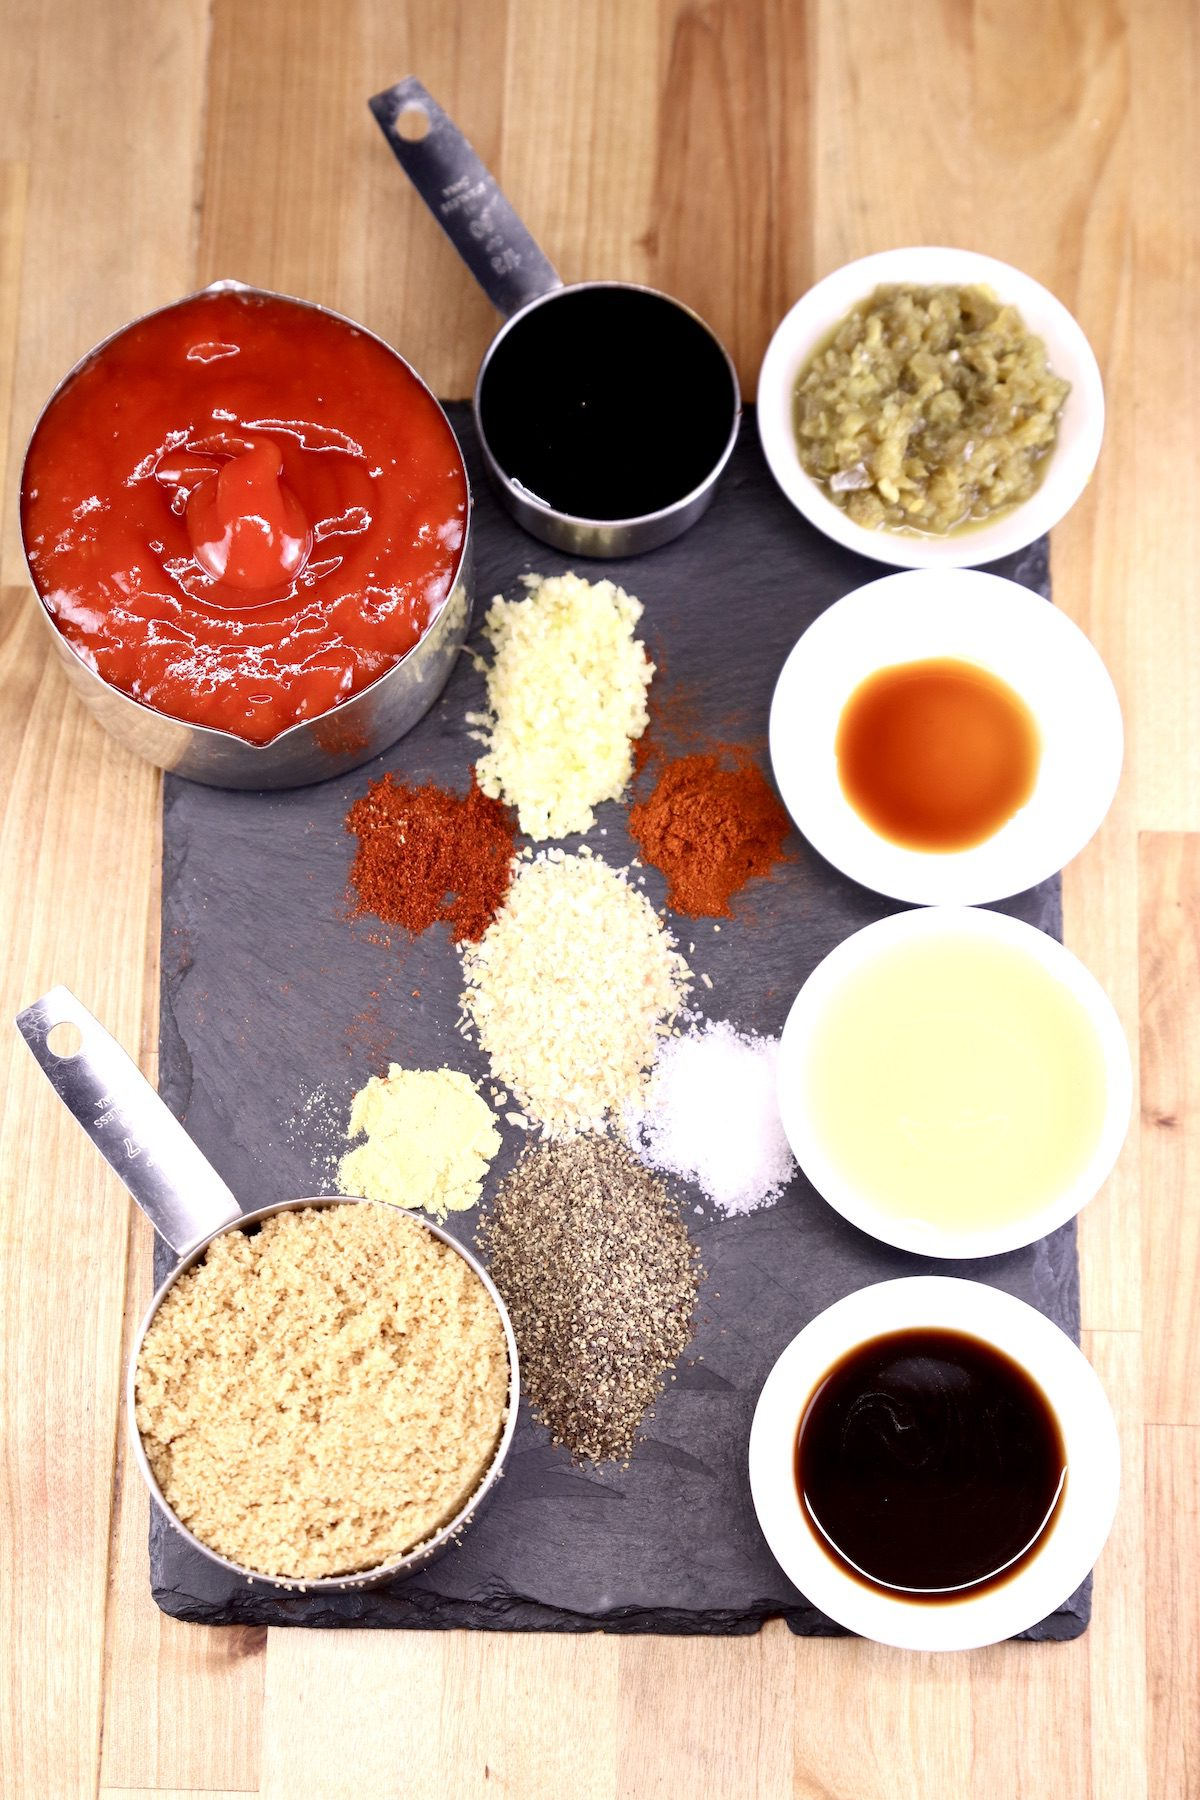 ingredients for jalapeno bbq sauce